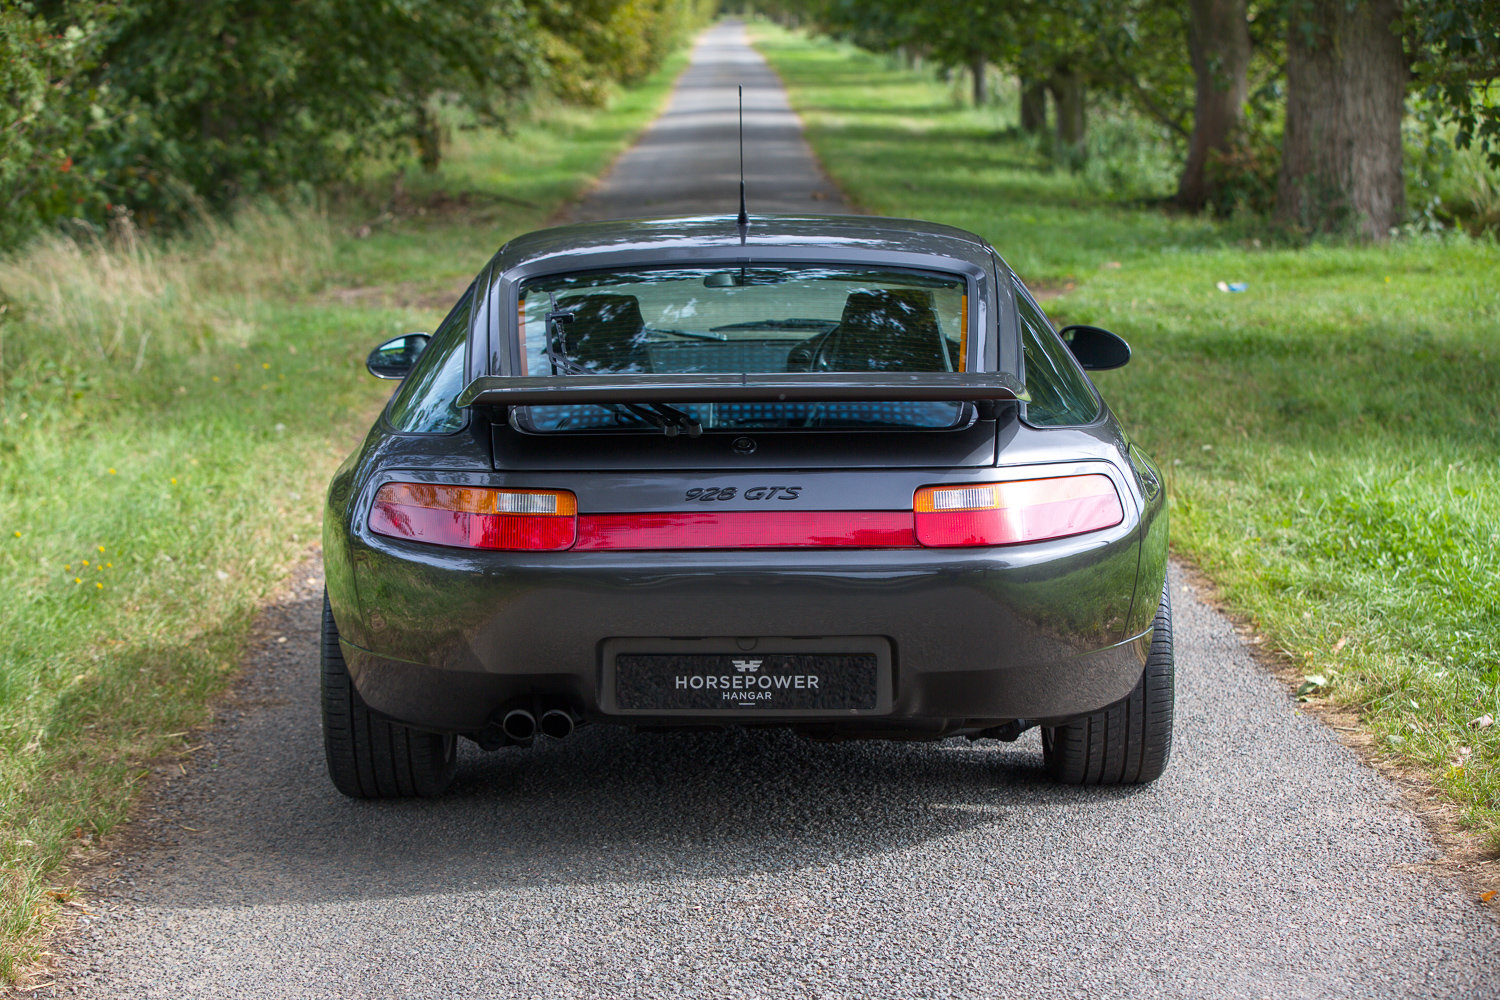 1994 PORSCHE 928 GTS - EXTREMELY PRESENTABLE UK SUPPLIED RHD CAR For Sale (picture 4 of 6)